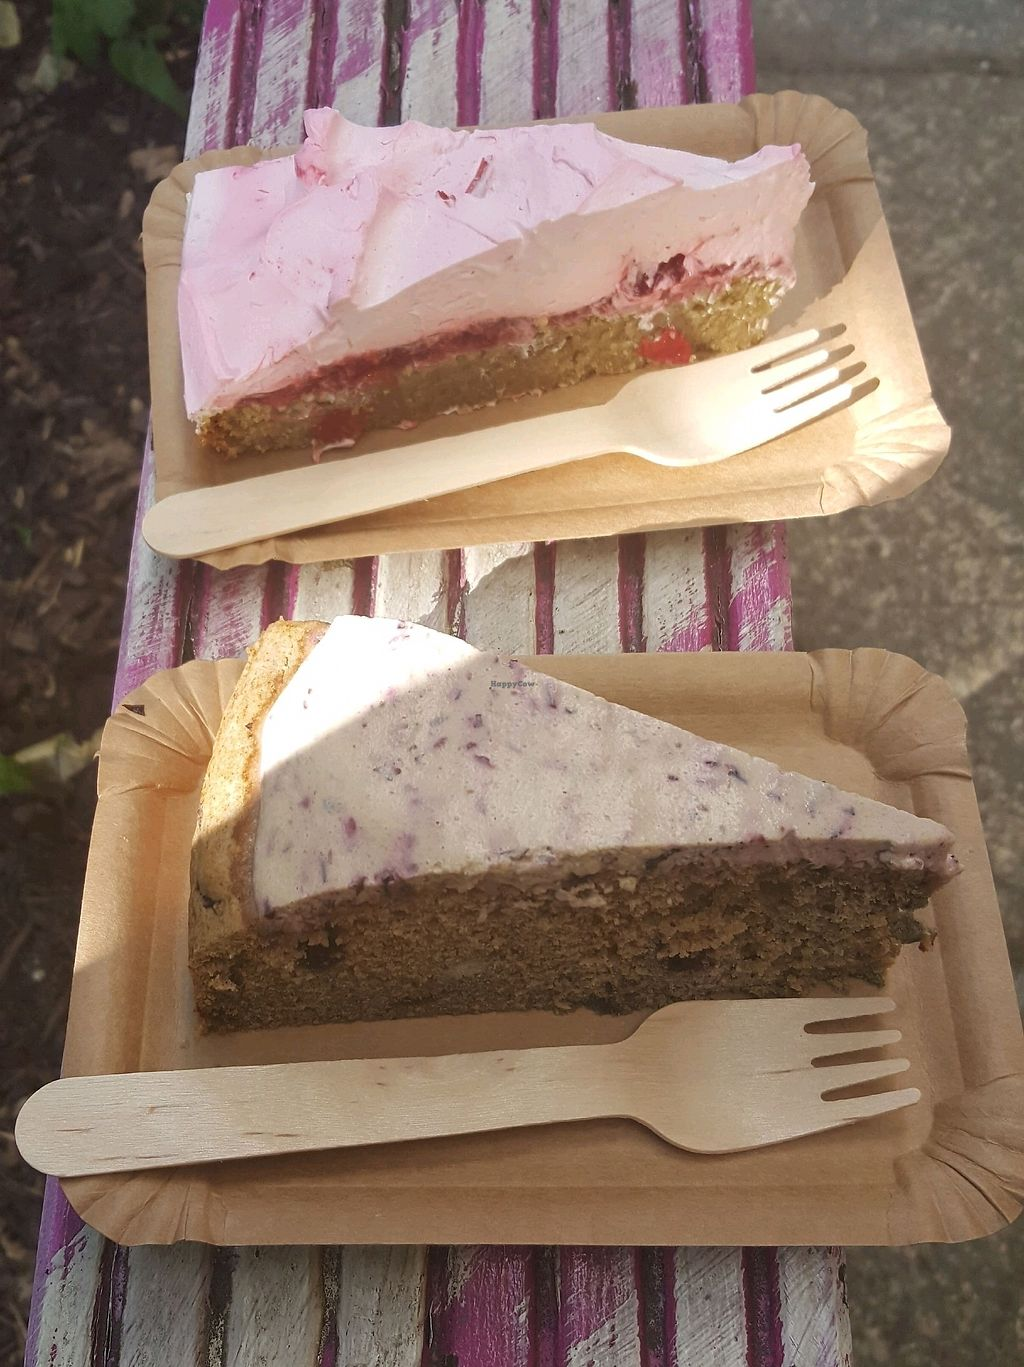 """Photo of Velicious  by <a href=""""/members/profile/RoseVonVegan"""">RoseVonVegan</a> <br/>takeaway in the summer - gorgeous cakes and weather <br/> February 18, 2018  - <a href='/contact/abuse/image/55697/360954'>Report</a>"""